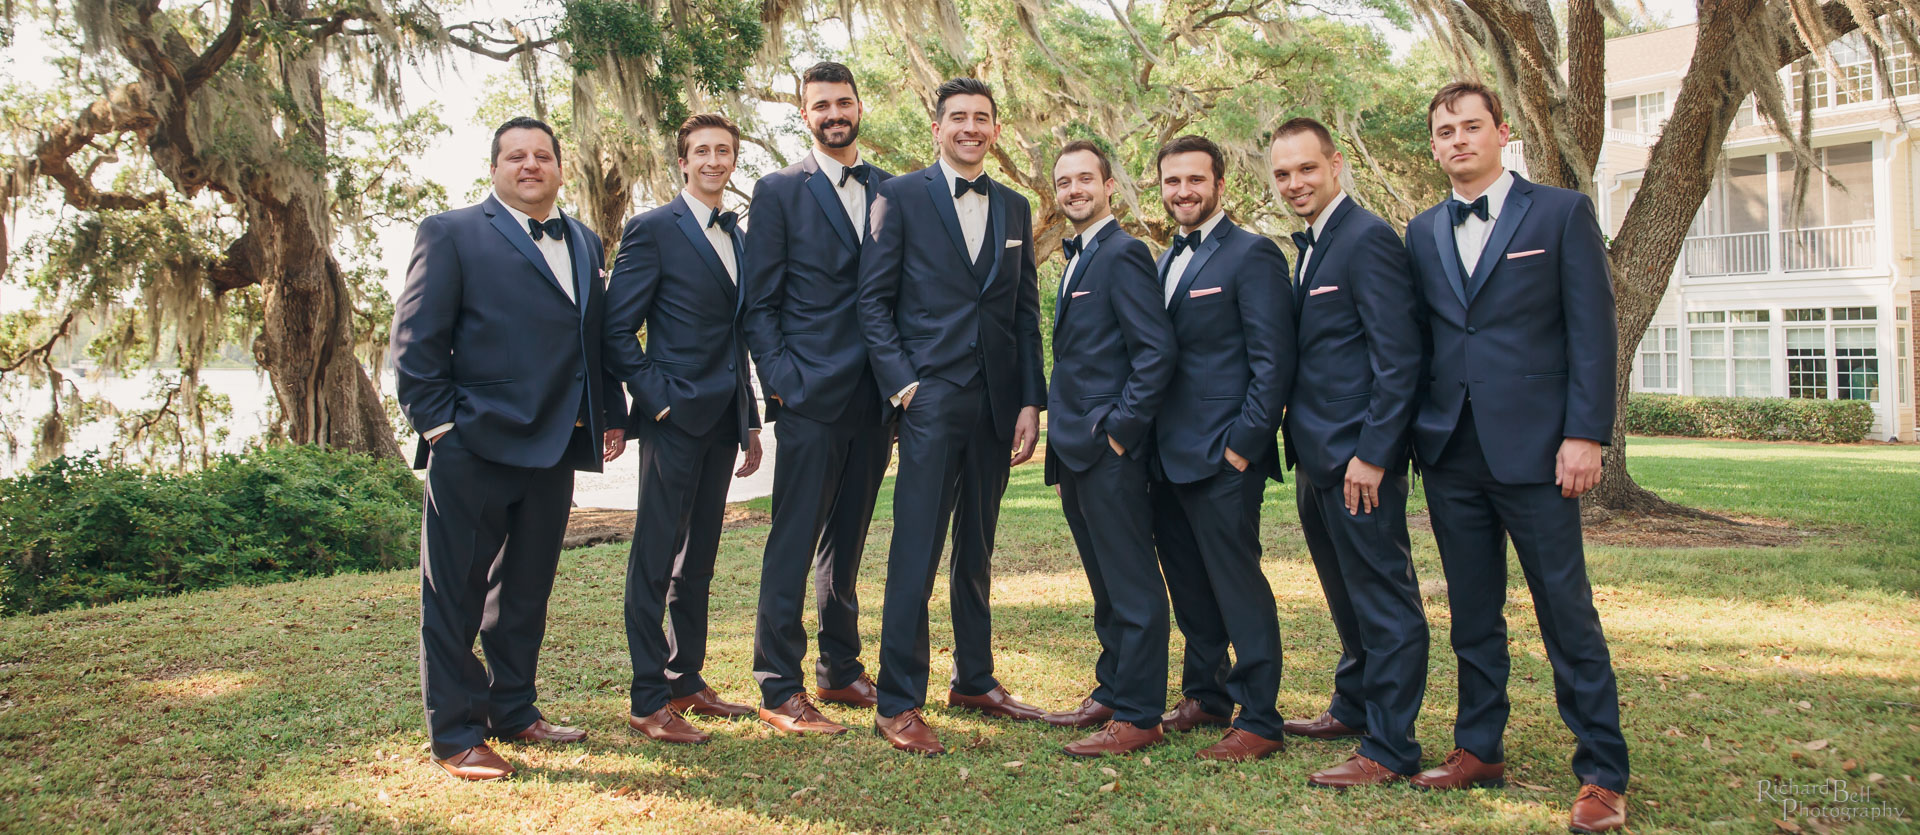 Cameron and Groomsmen